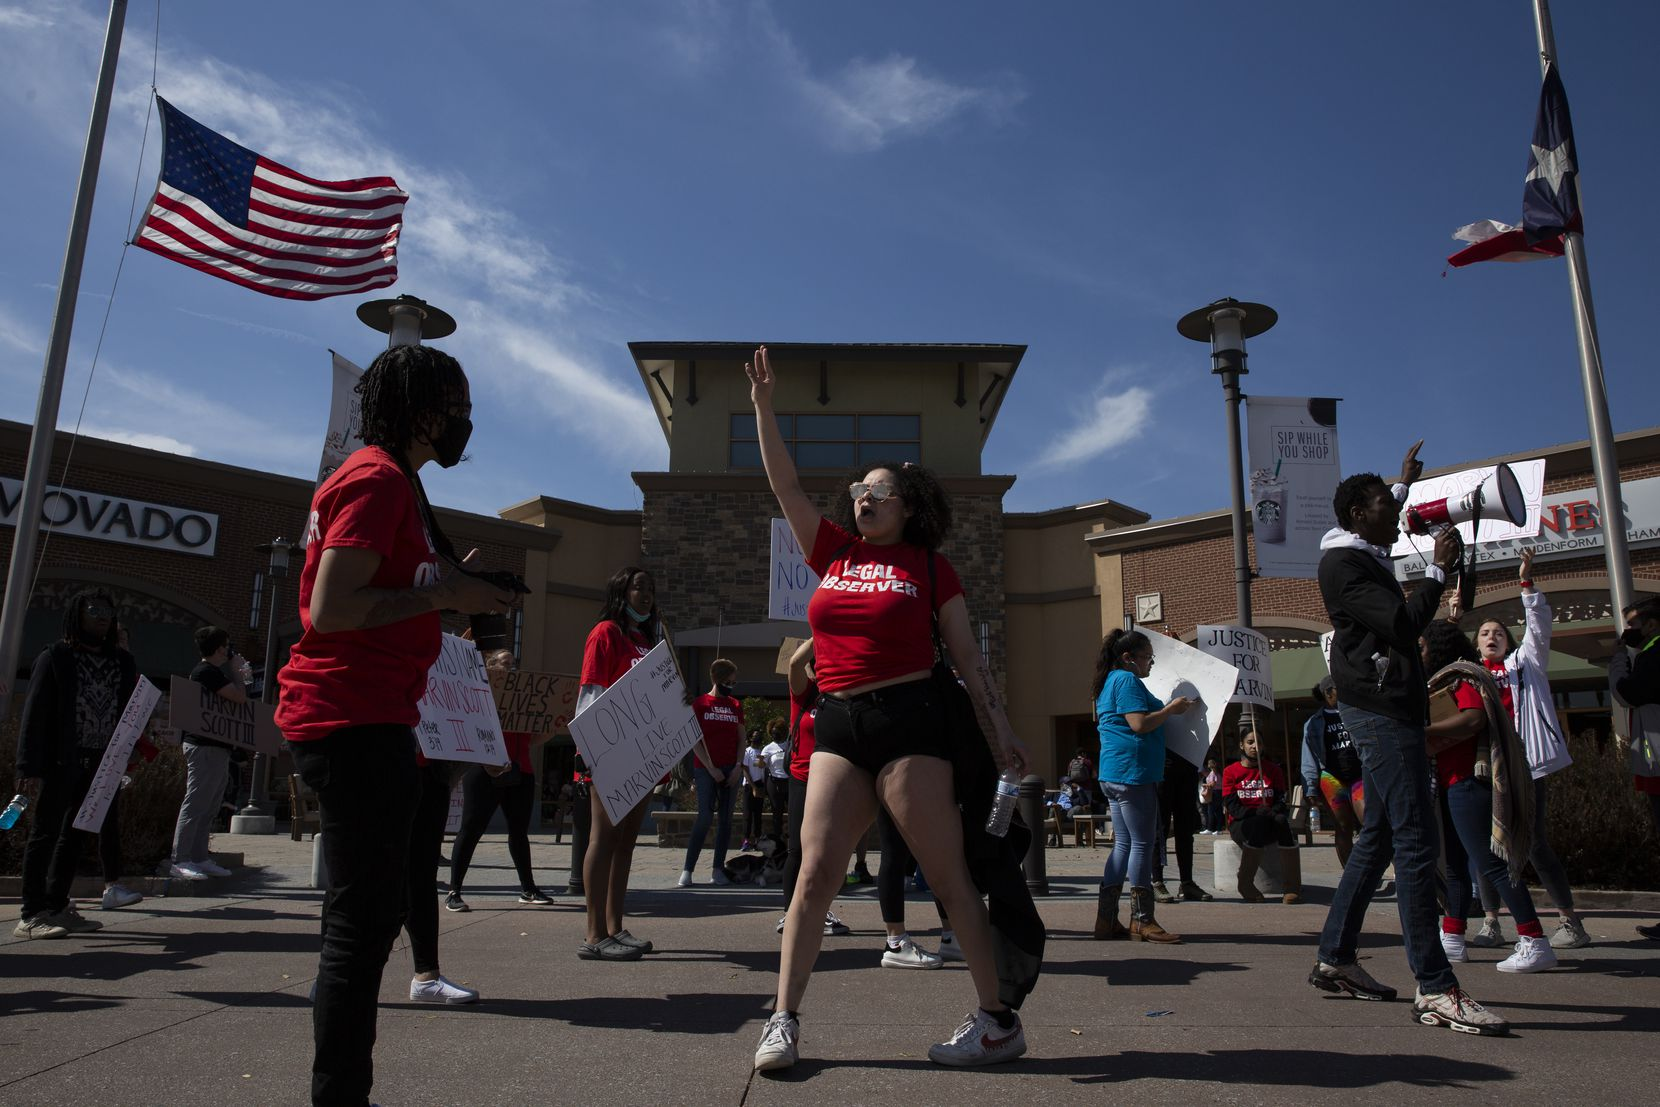 """People march to the Allen Outlets on Sunday, March 21, 2021 demanding justice for Marvin Scott III, who died a week prior while in custody at the Collin County Jail on March 14, 2021. Marvin Scott III was arrested at the Allen Outlets for possession of less than two ounces of marijuana. Demonstrators called for the arrest of the """"Collin County Seven"""", the seven Collin County Jail employees who were placed on leave after Marvin's death. (Shelby Tauber/Special Contributor)"""